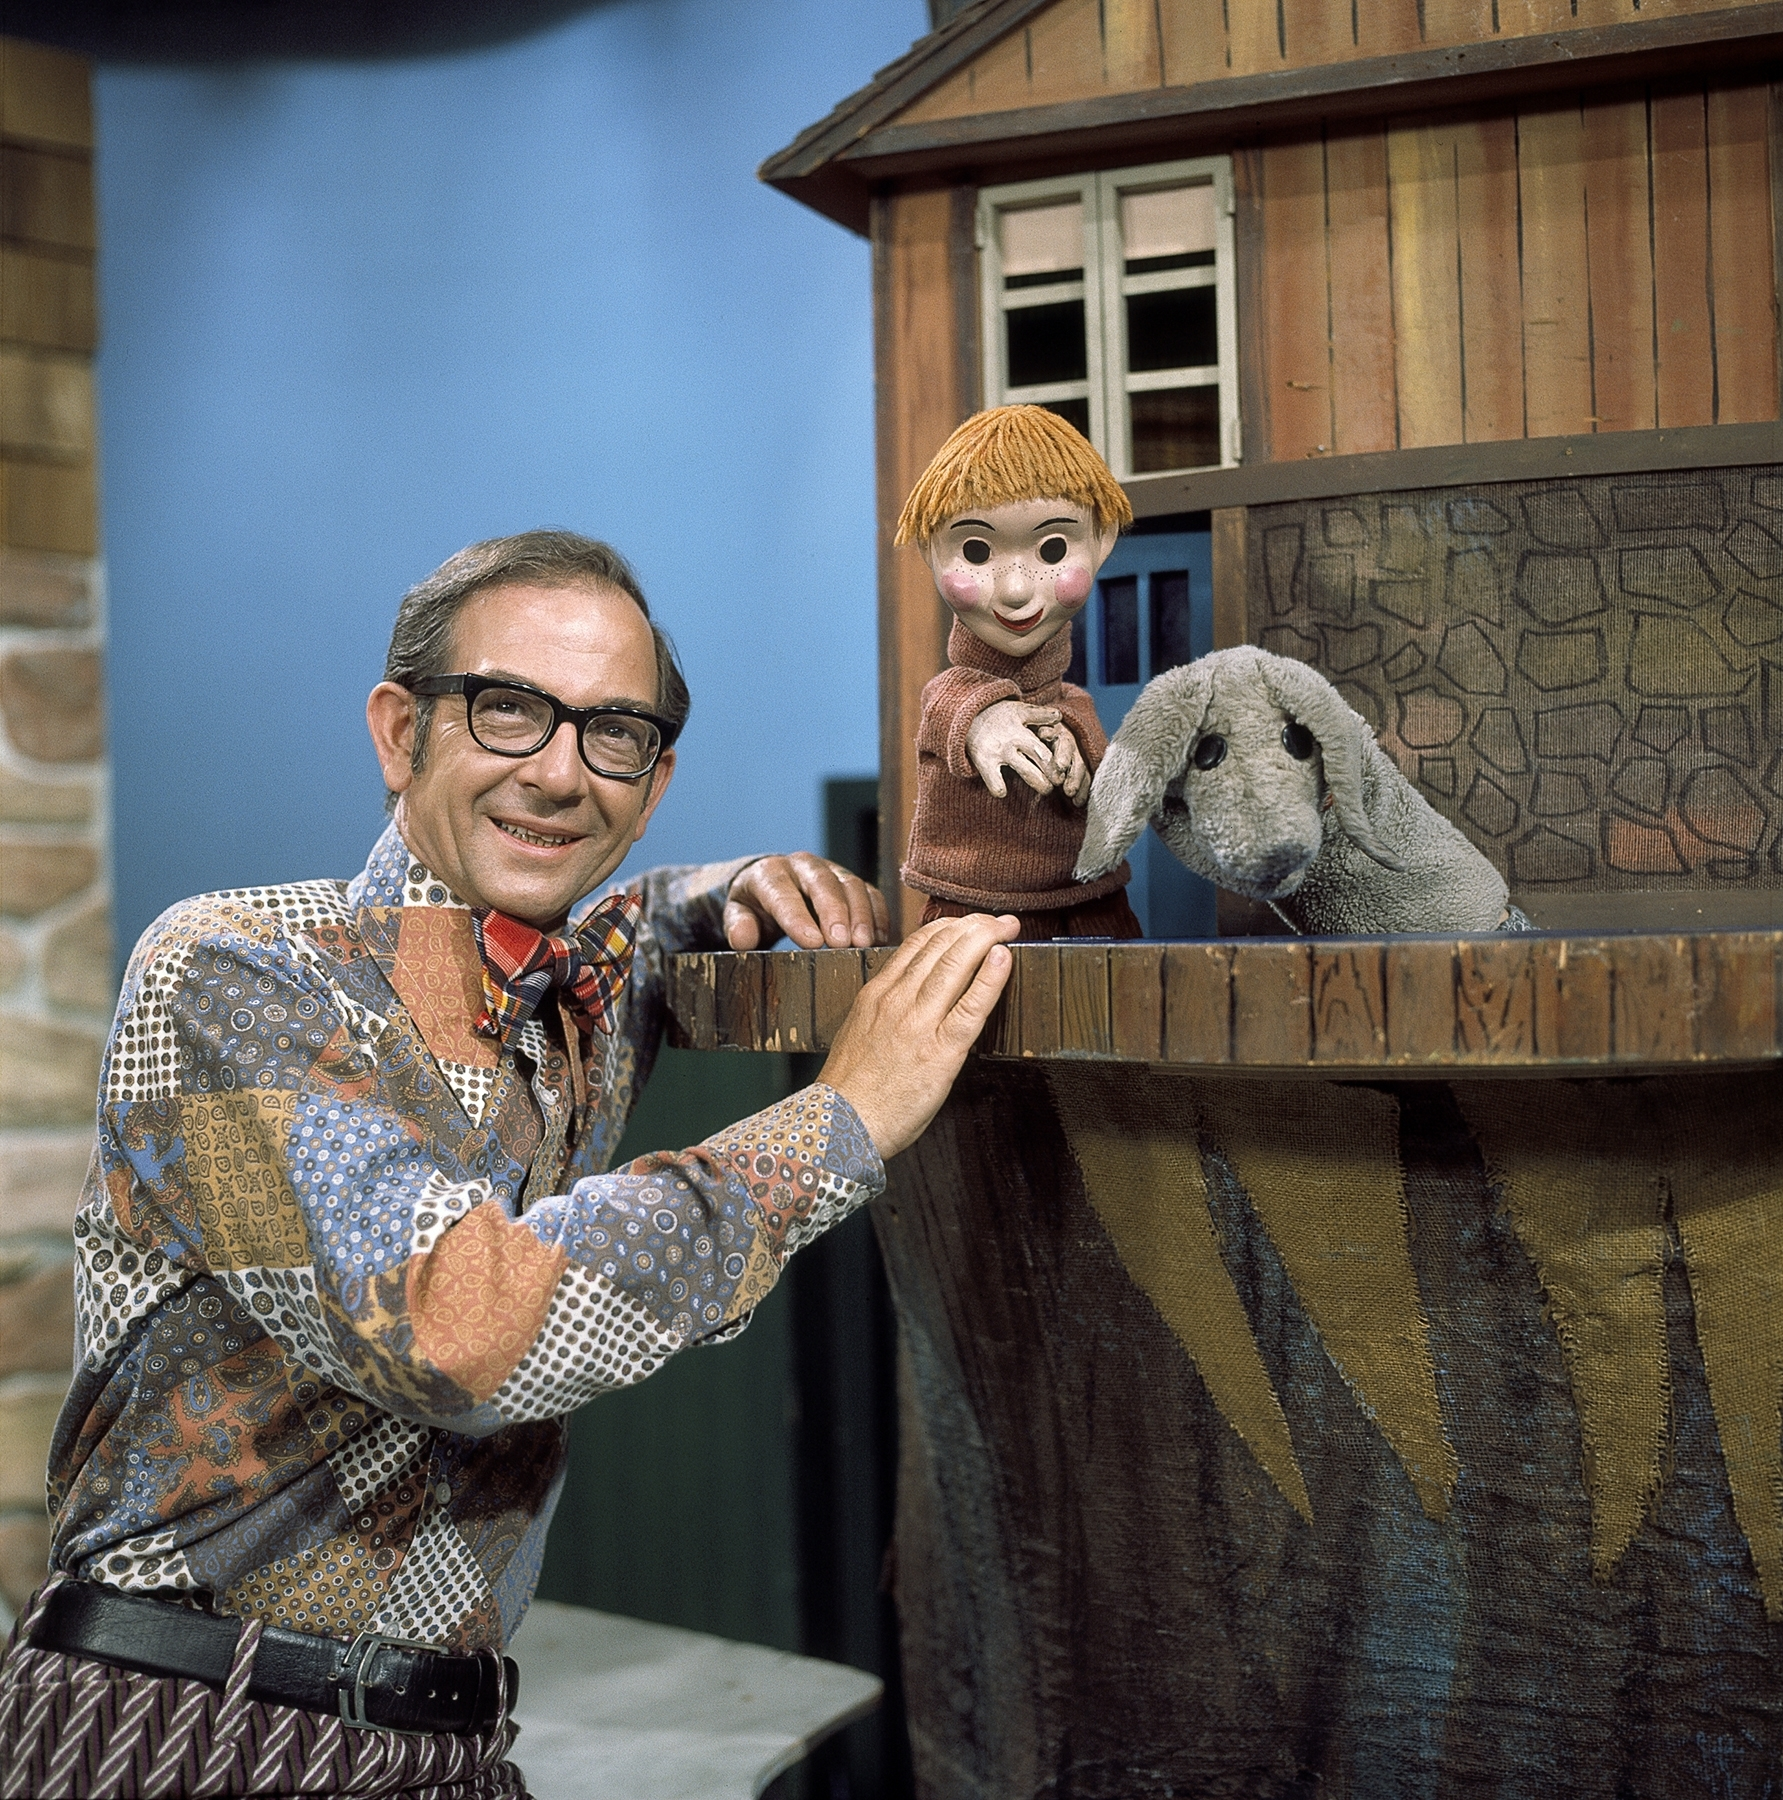 A pioneer in Canadian kids TV, Mr. Dressup, Ernie Coombs (Facebook)